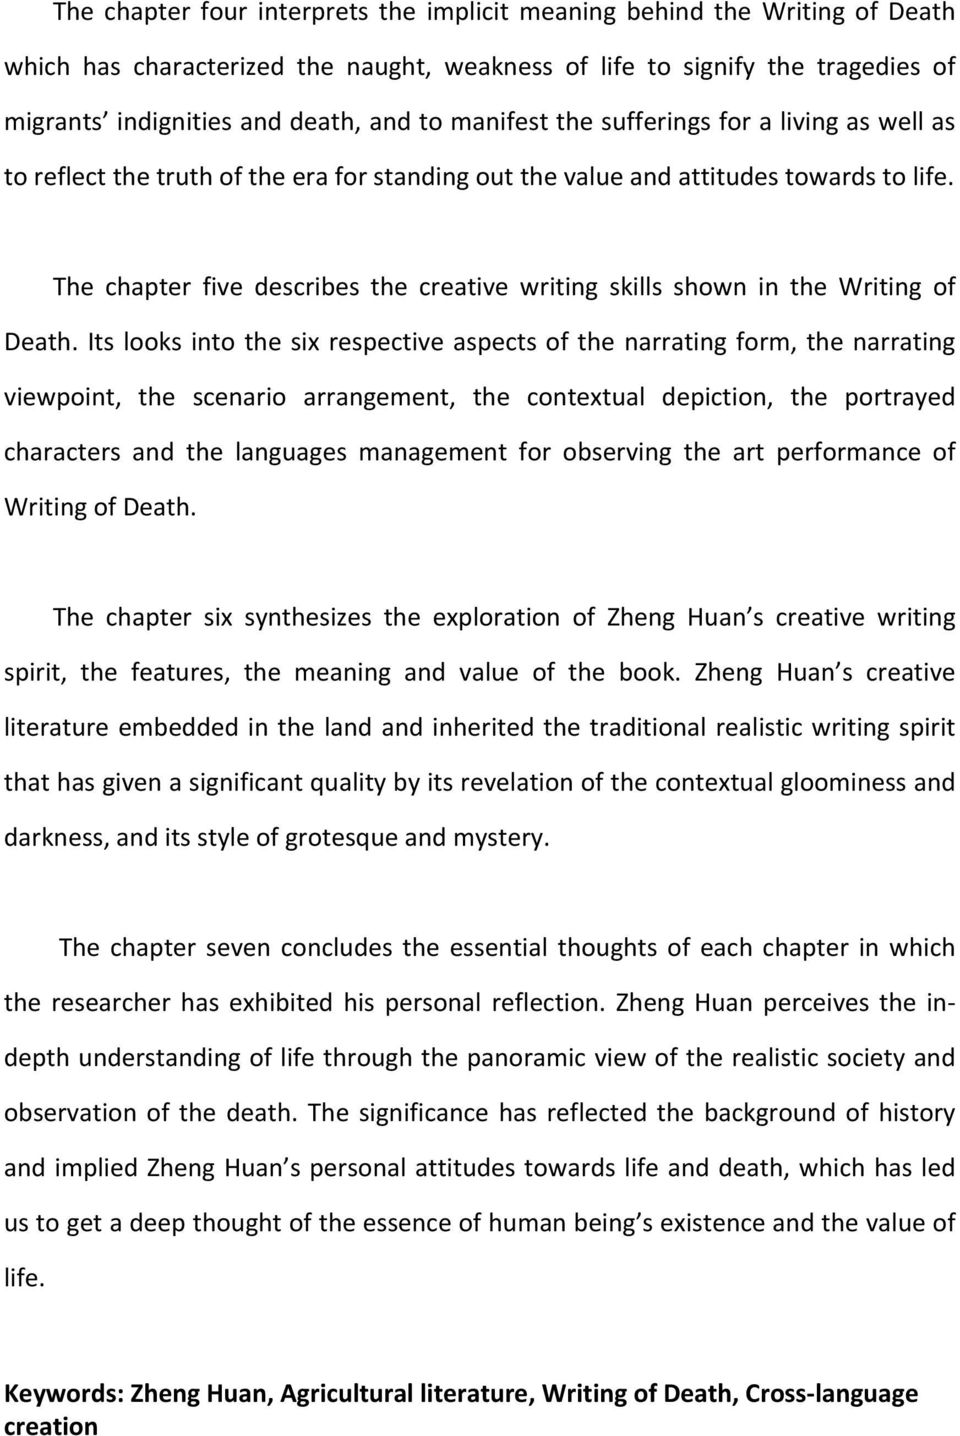 The chapter five describes the creative writing skills shown in the Writing of Death.